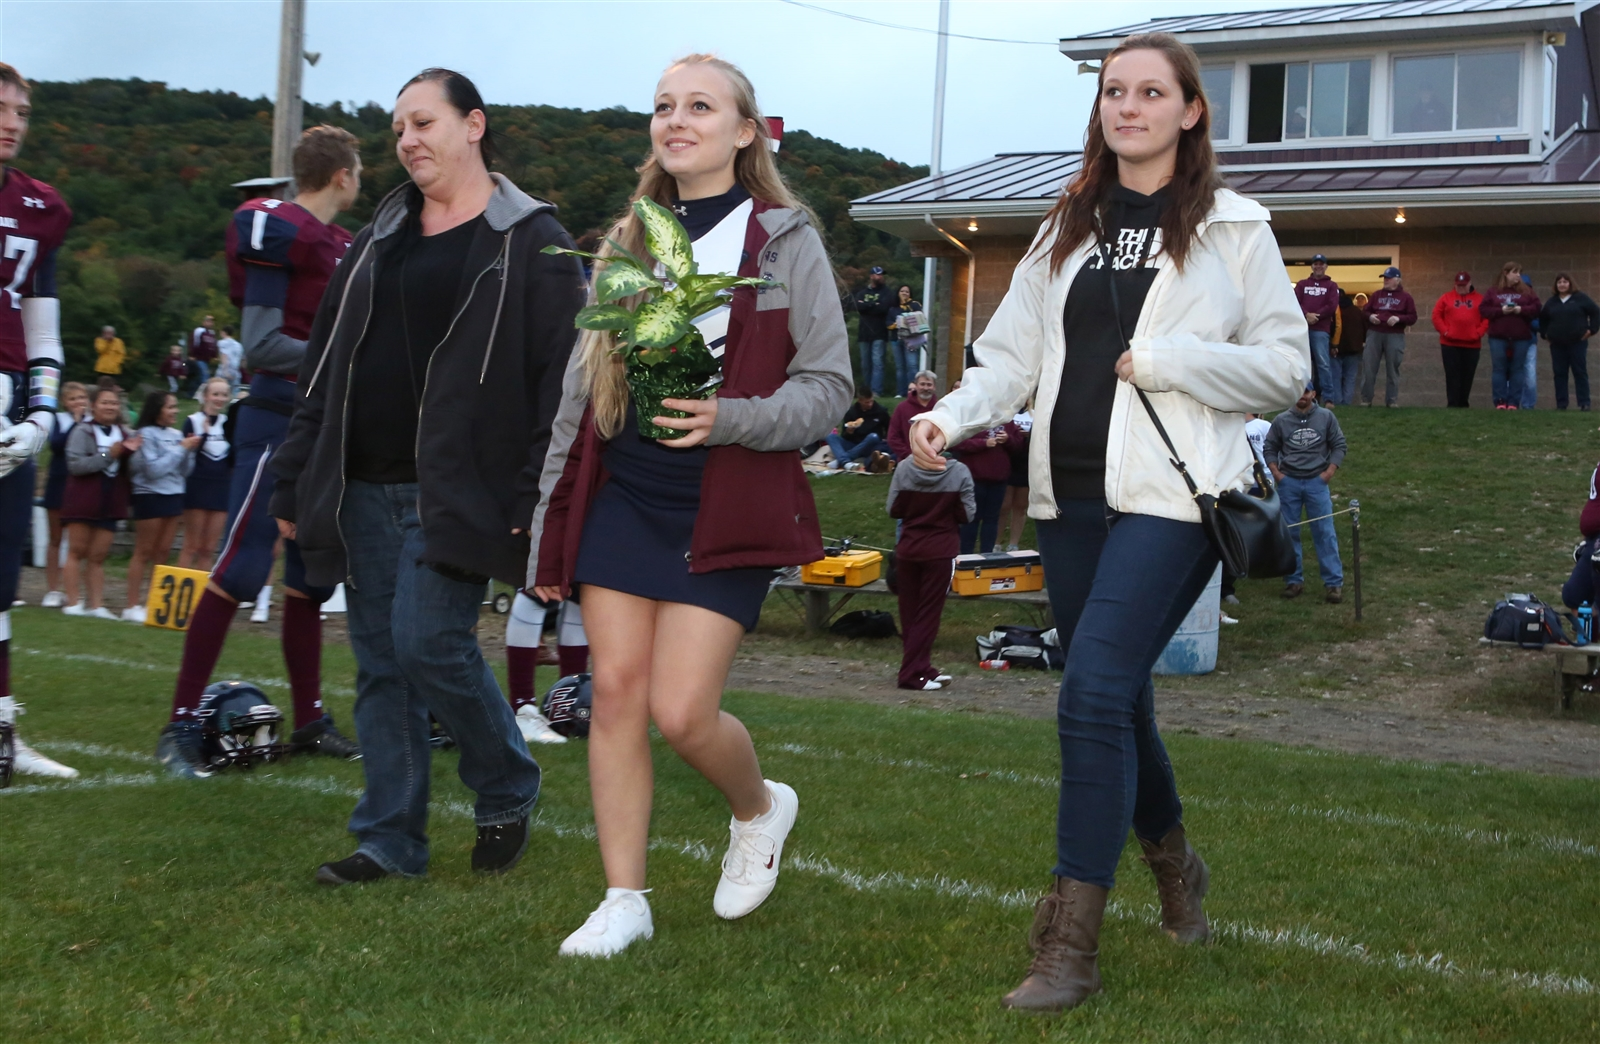 Maple Grove improved to 5-0 by defeating previously unbeaten Ellicottville/Franklinville, 43-12, on Friday night.